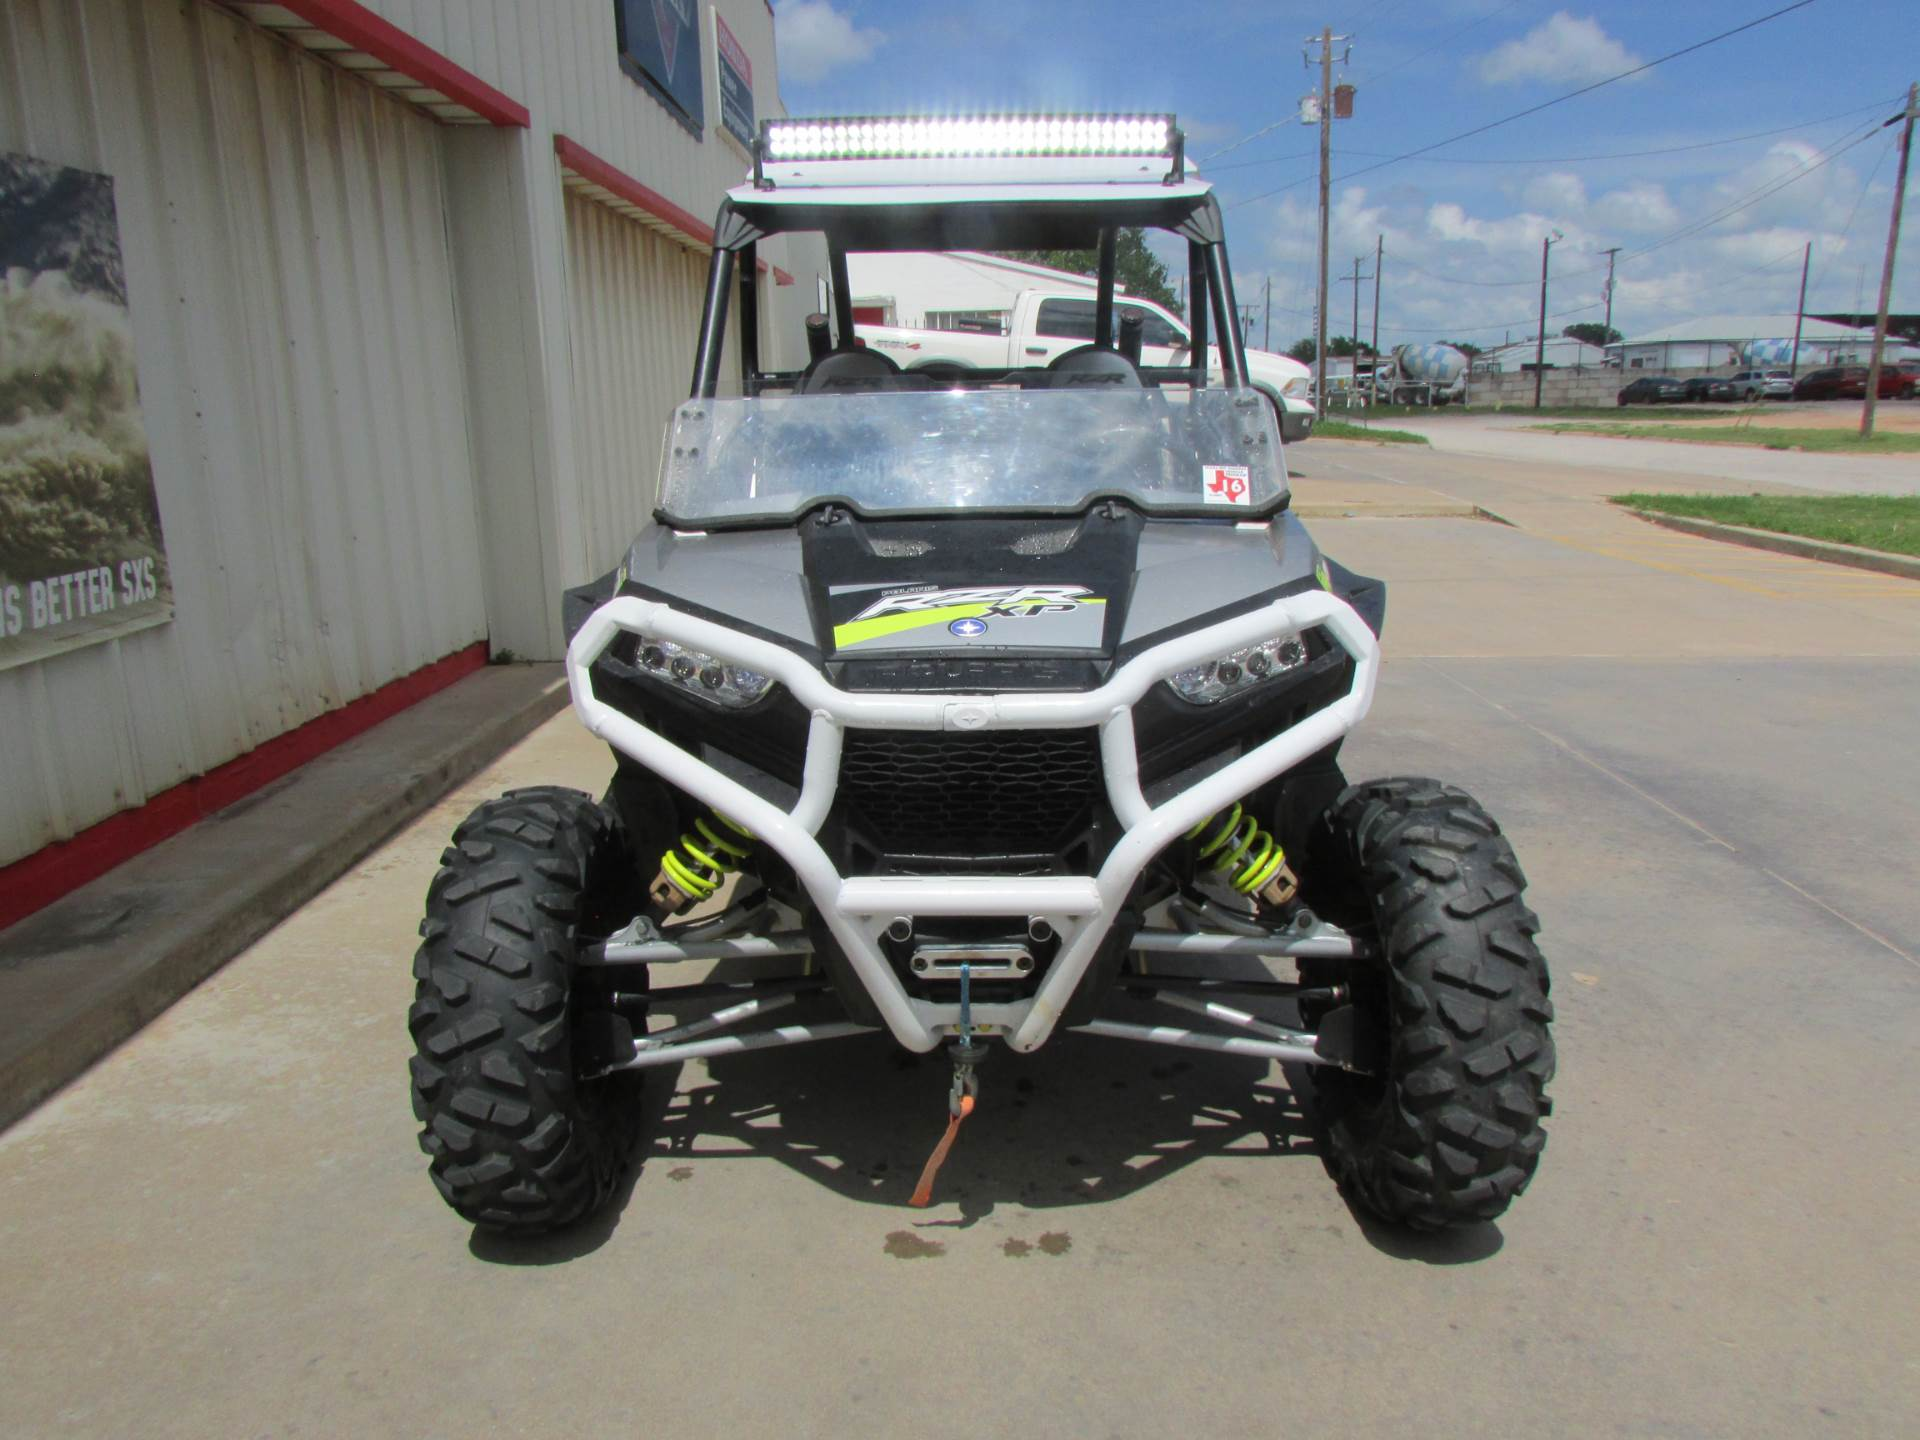 2015 Polaris RZR® XP 1000 EPS in Wichita Falls, Texas - Photo 4